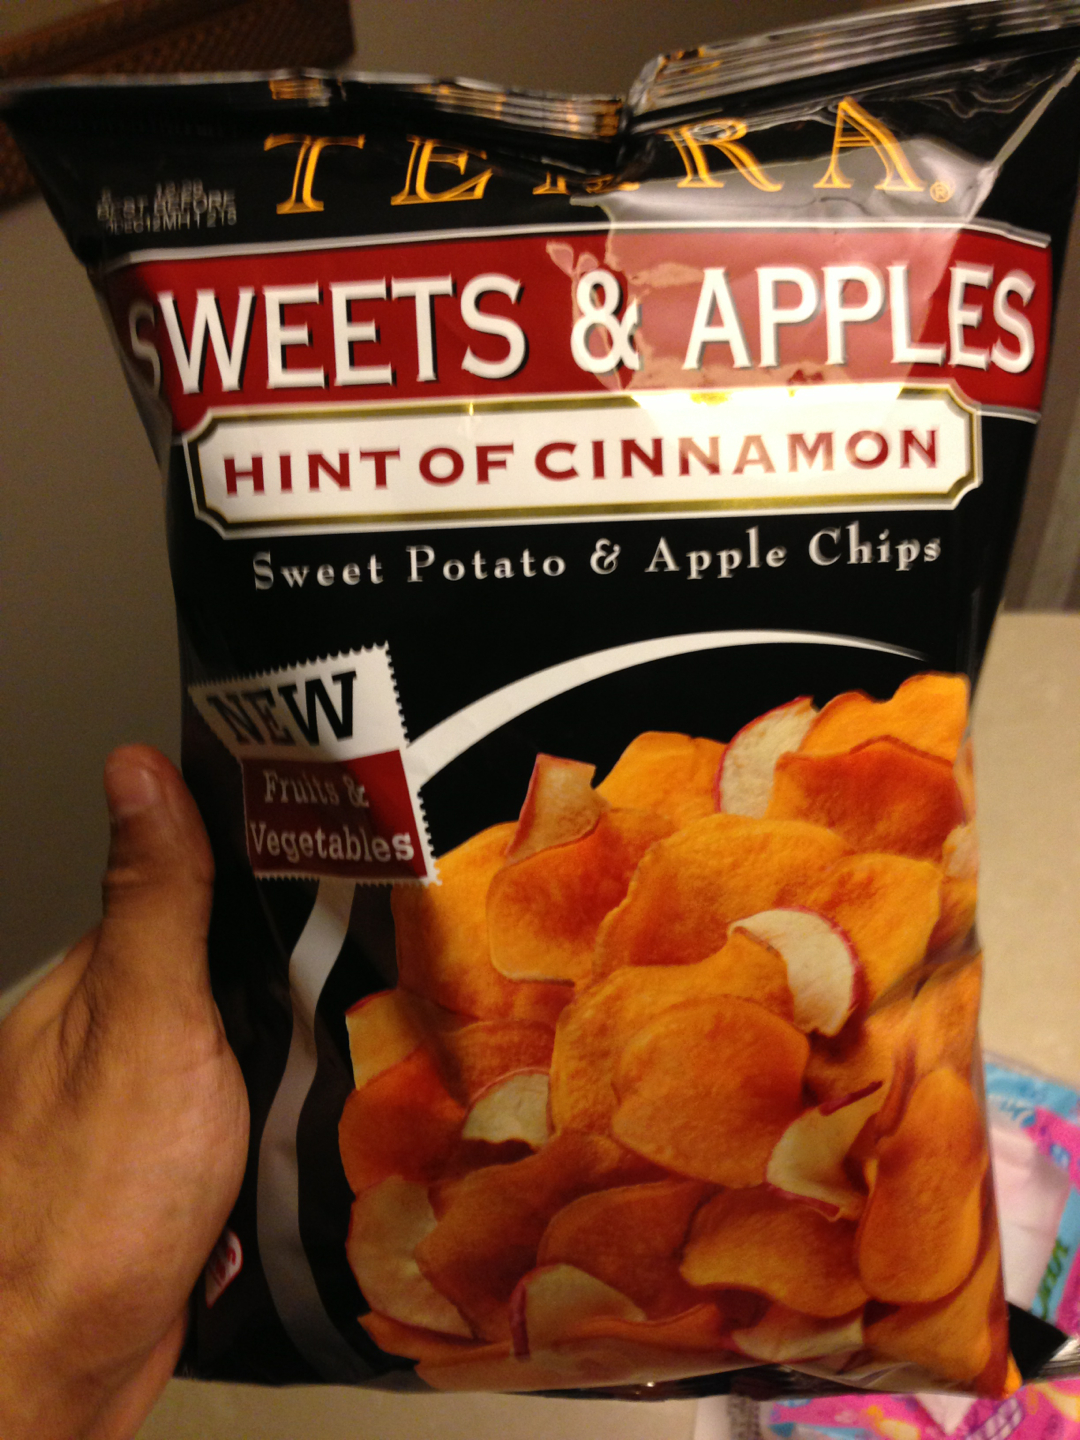 I picked up this new Terra chips pack at the supermarket today. How they make such amazing chips I do not know.